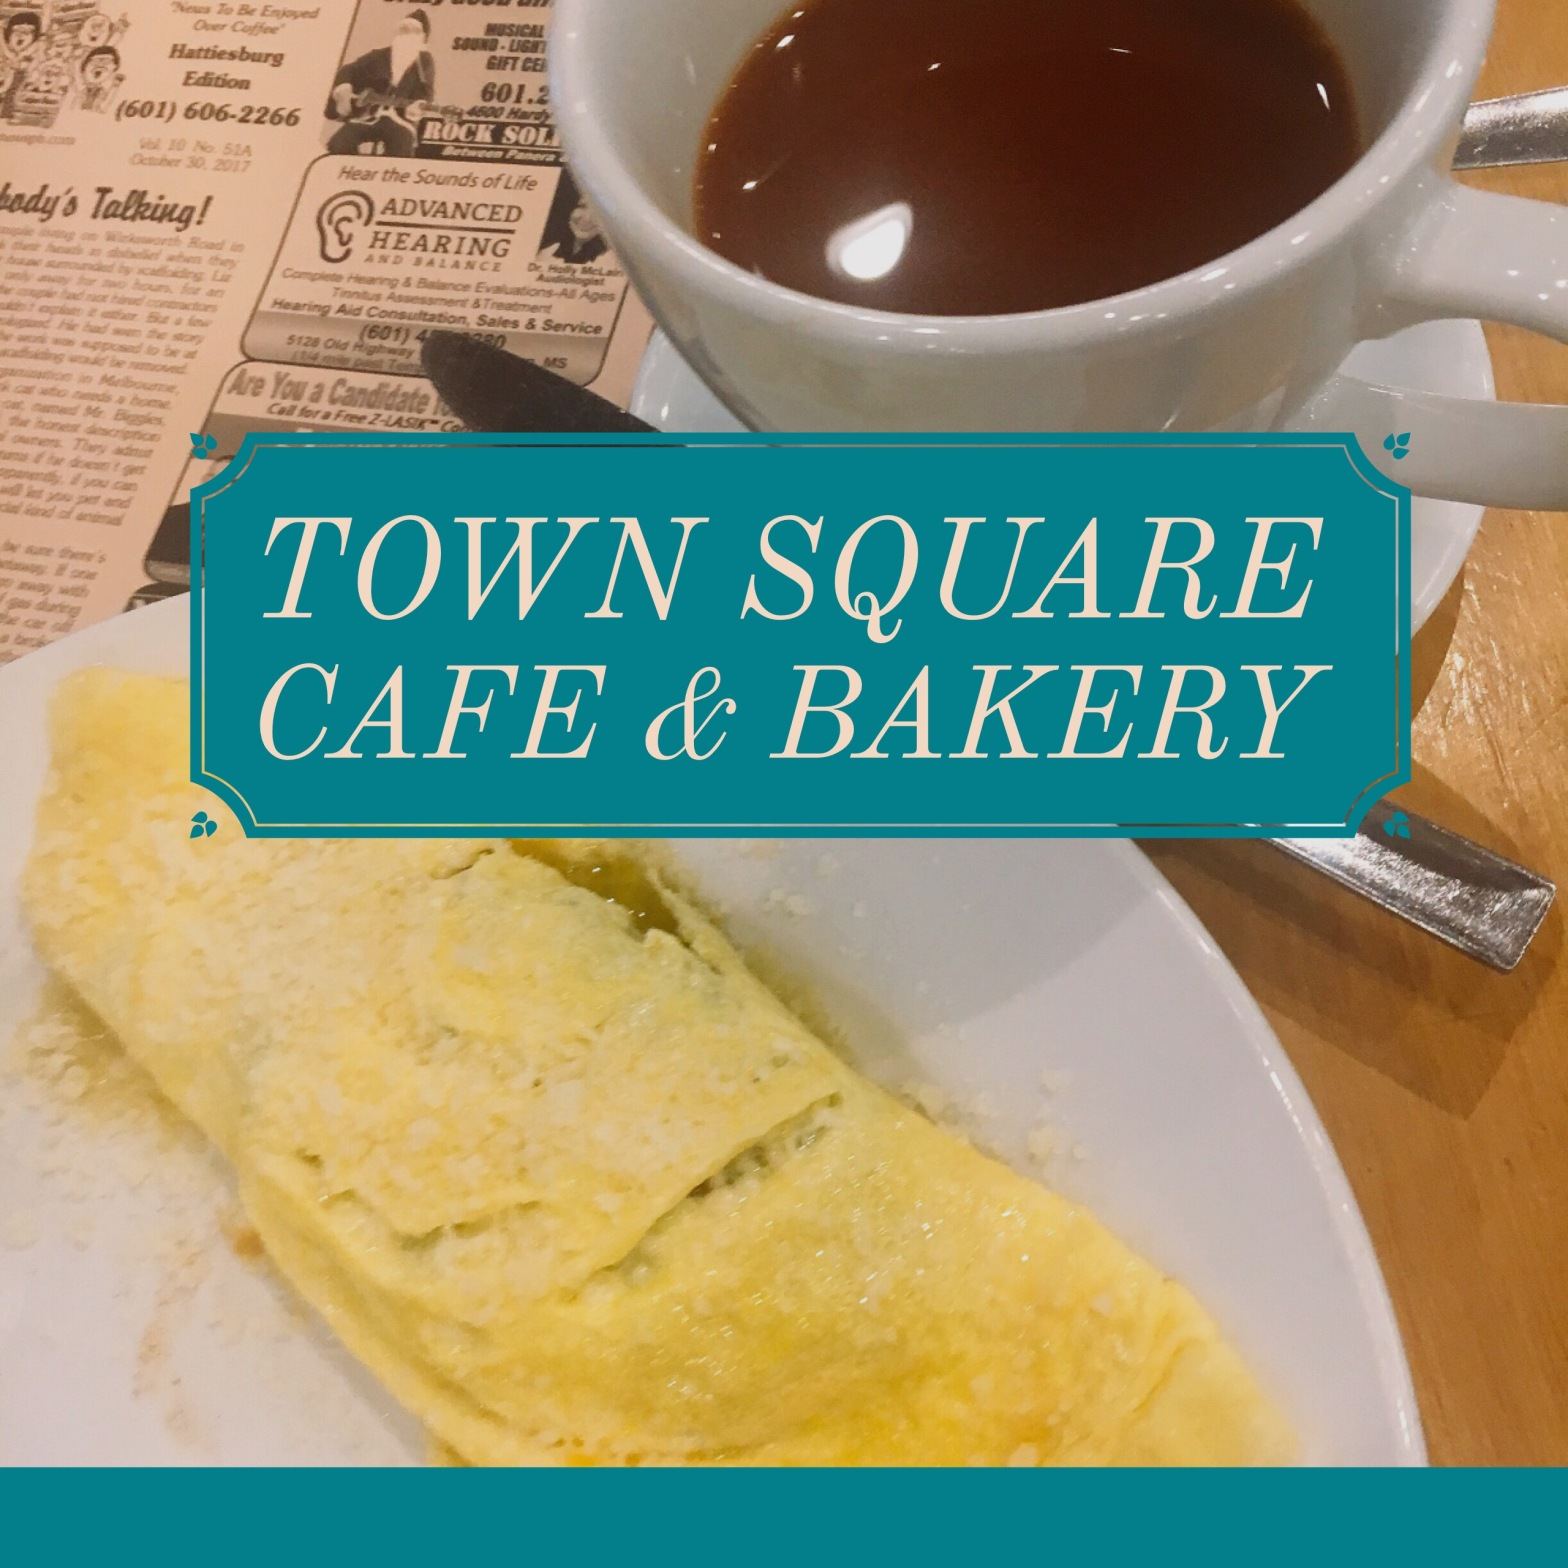 Town Square Cafe & Bakery